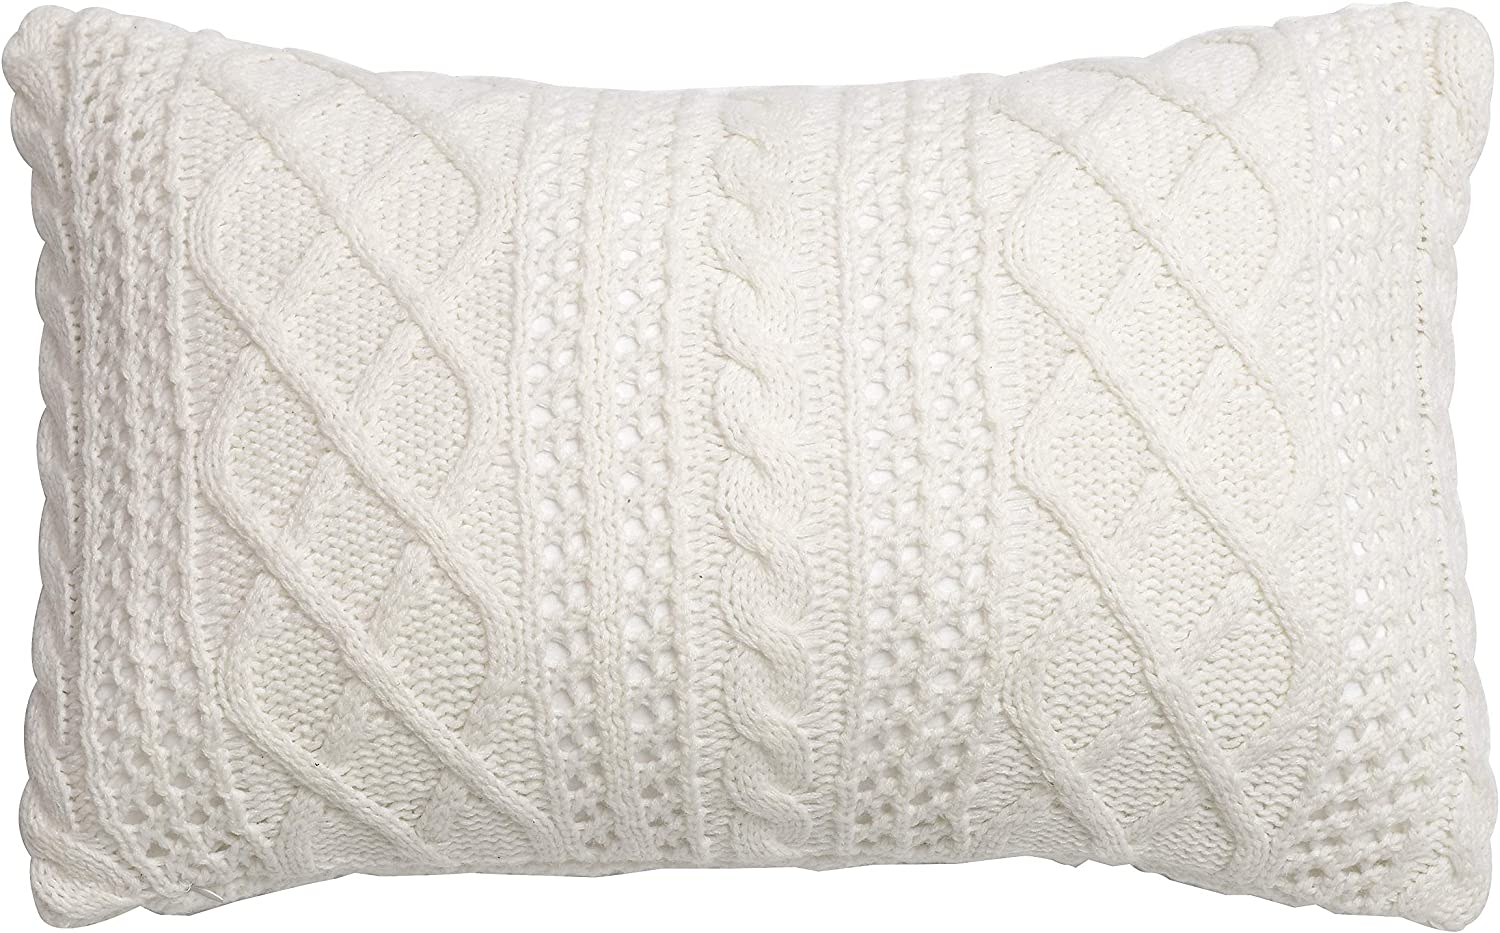 Amazon Com Lumbar Decorative Throw Pillow Cover Sweater Knit Rectangular Cushion Case For Couch Chair Bed And Home Accent Decor 12 X 20 Inch 30 X 50 Cm Cream Home Kitchen